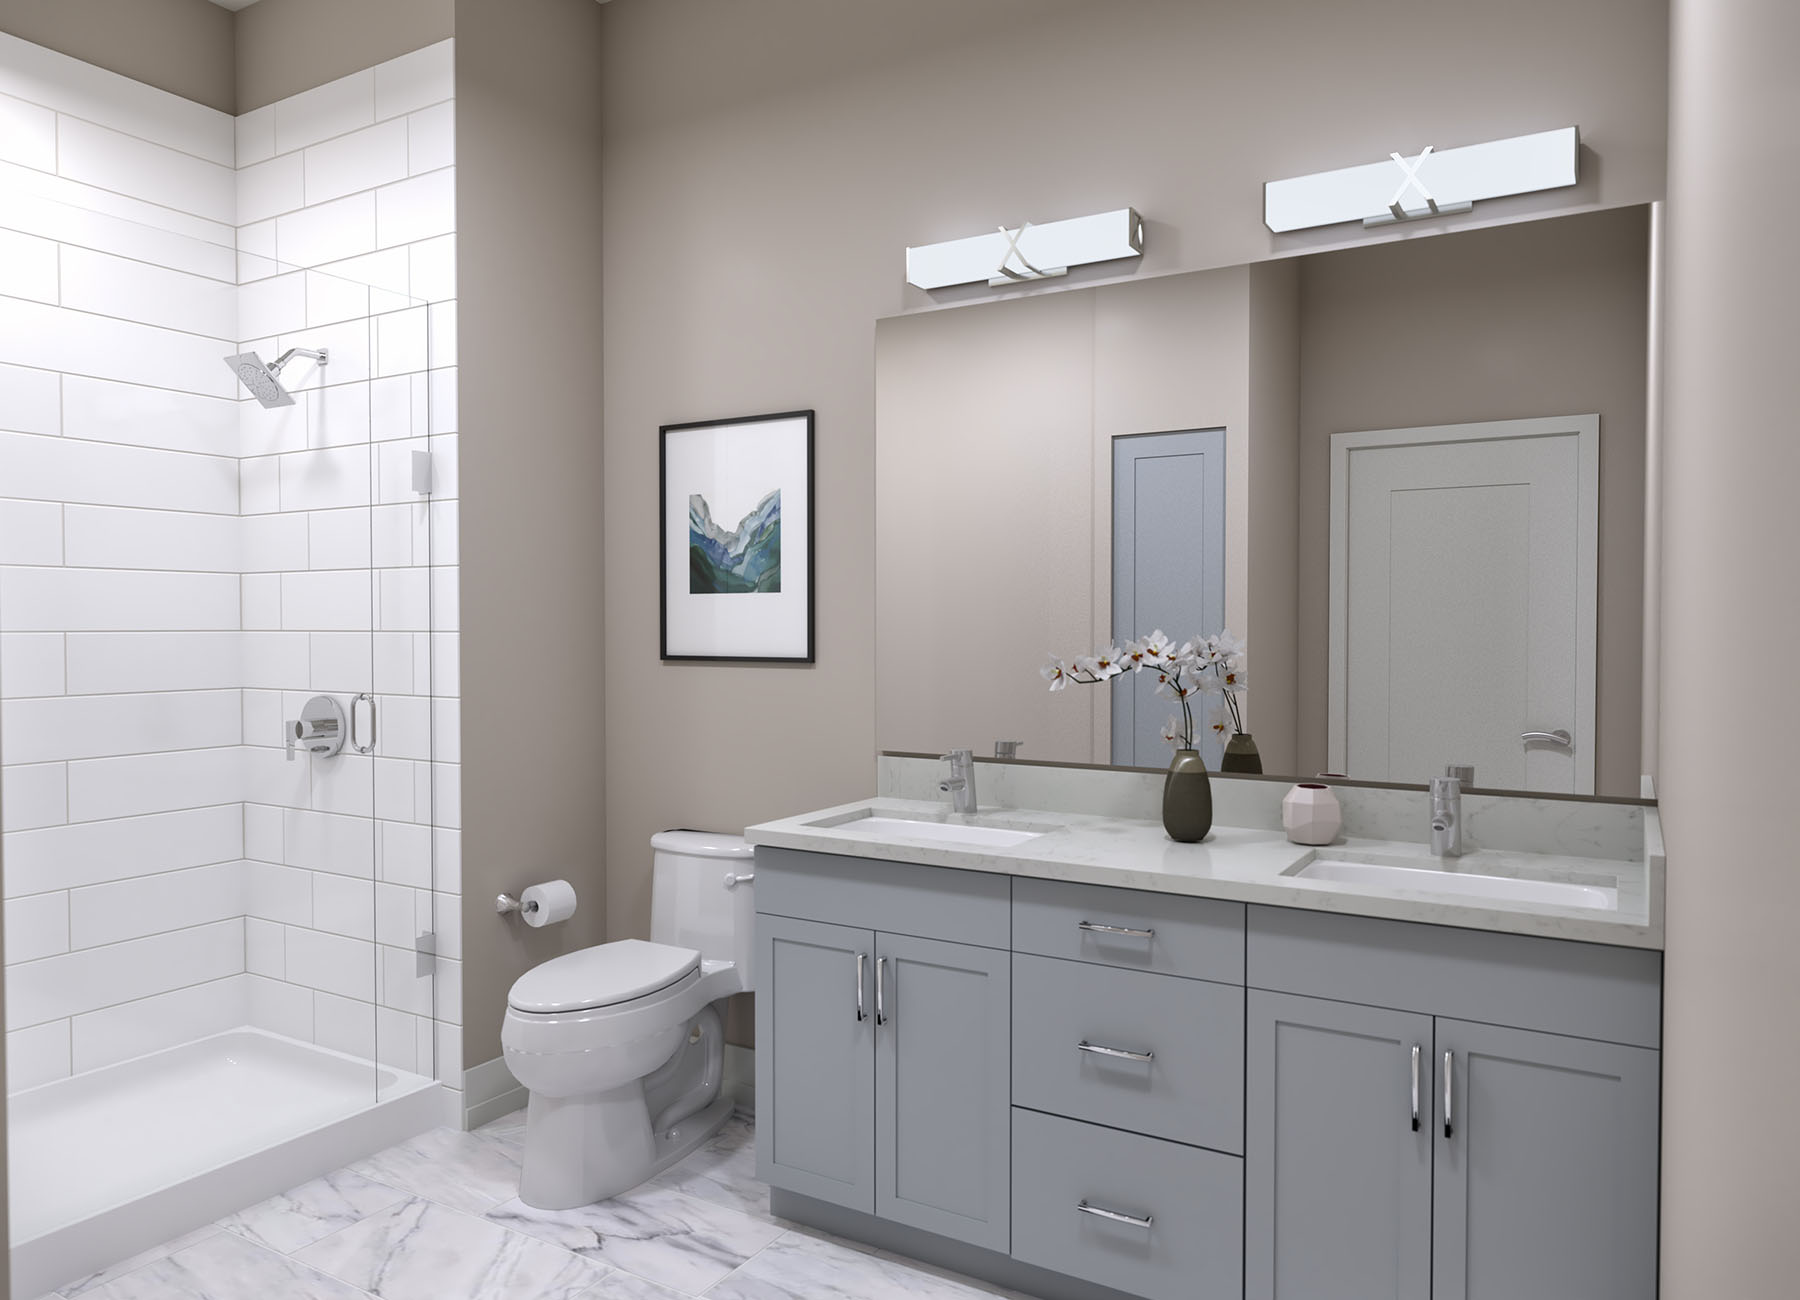 Rendering of a white bathroom with high end material finishes